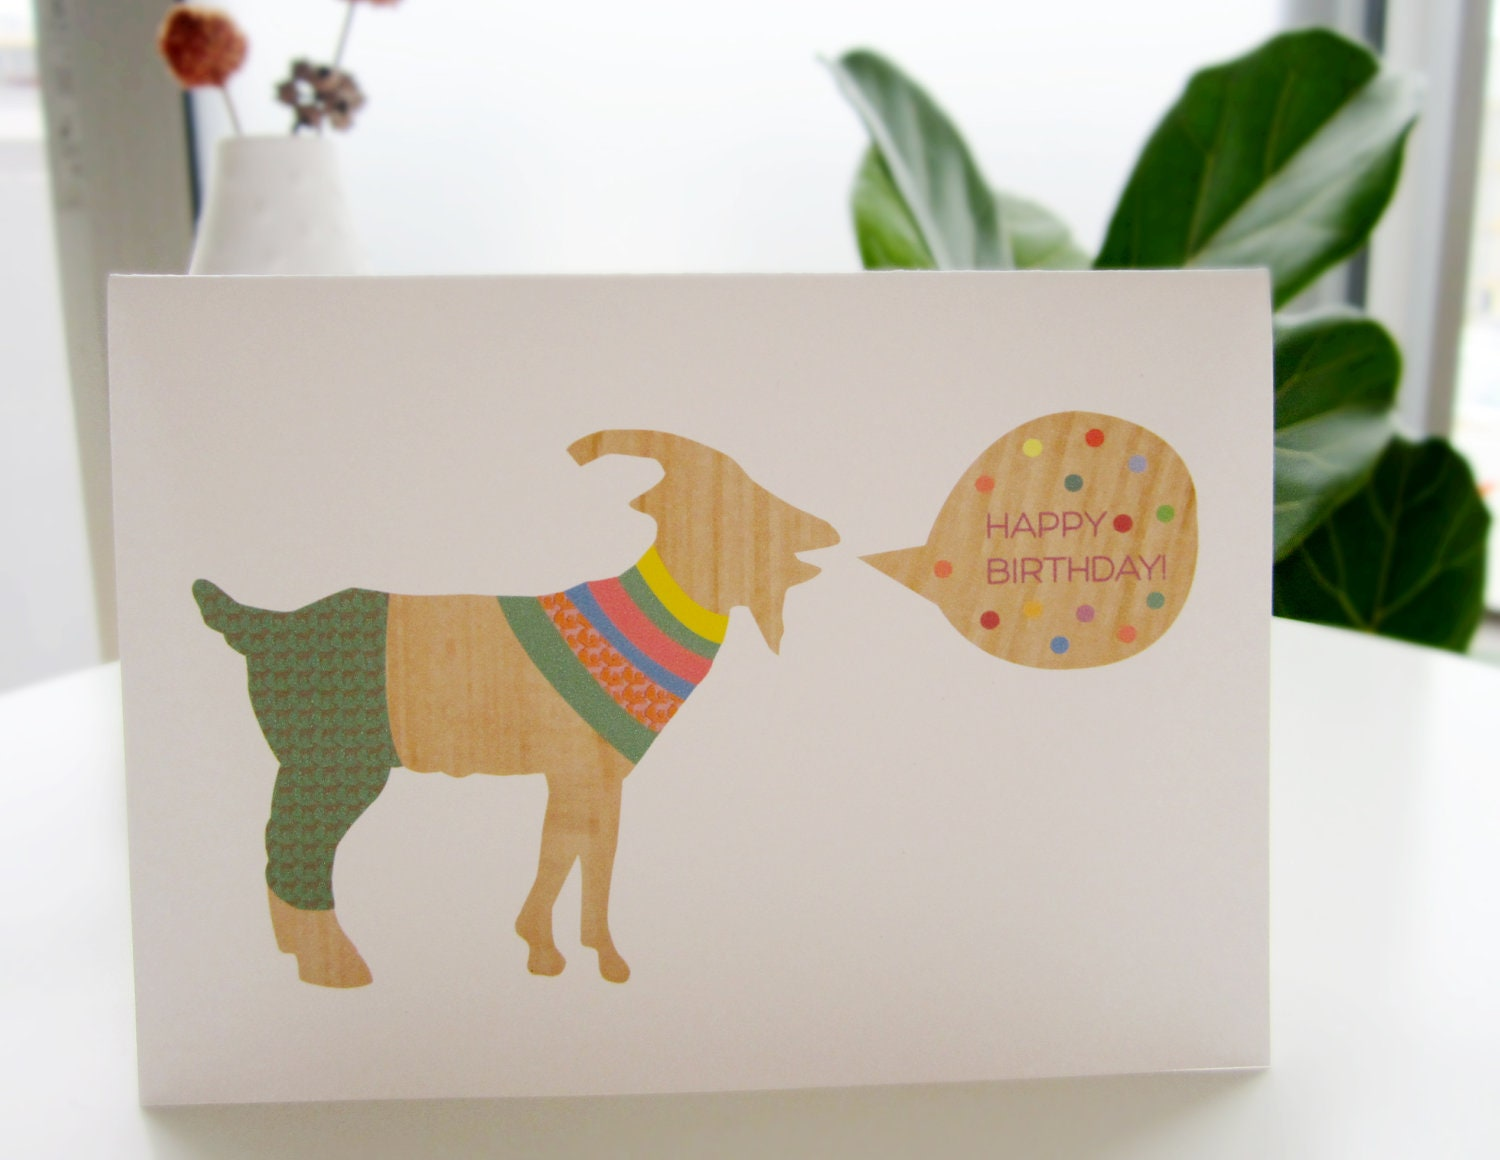 Happy Birthday Card . goat wishing you a happy birthday. unique cute colorful handmade card 4.25 X 4.5""